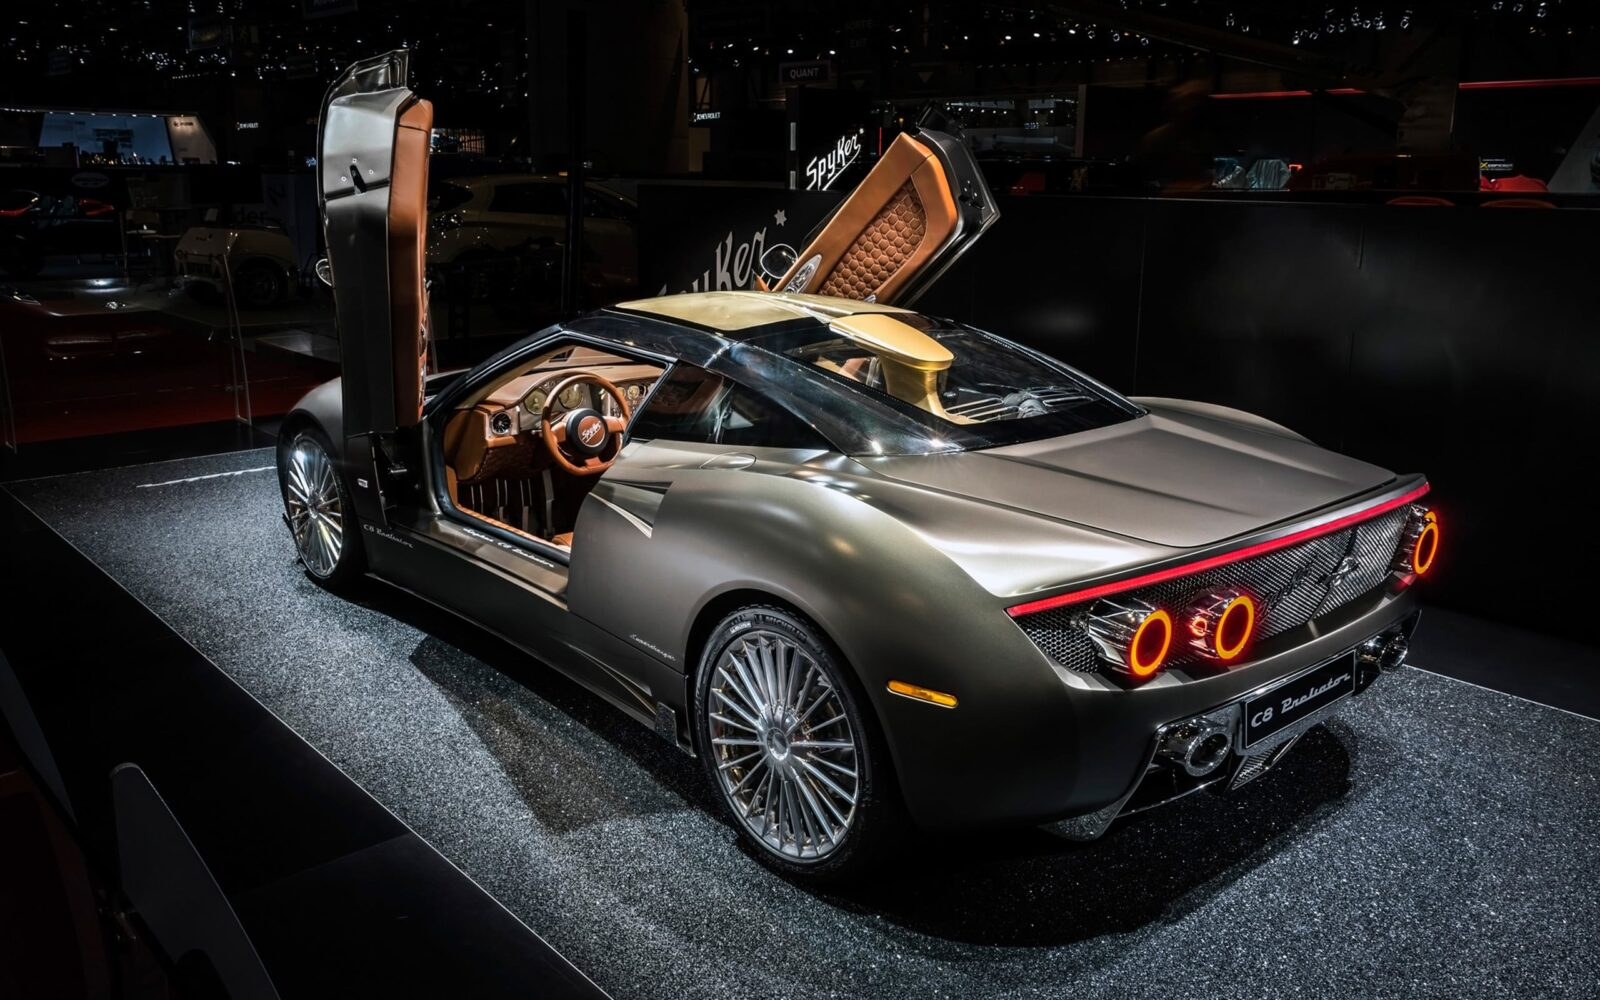 Bmw I8 Wheels >> 2016 Spyker C8 Preliator HD wallpapers, pictures